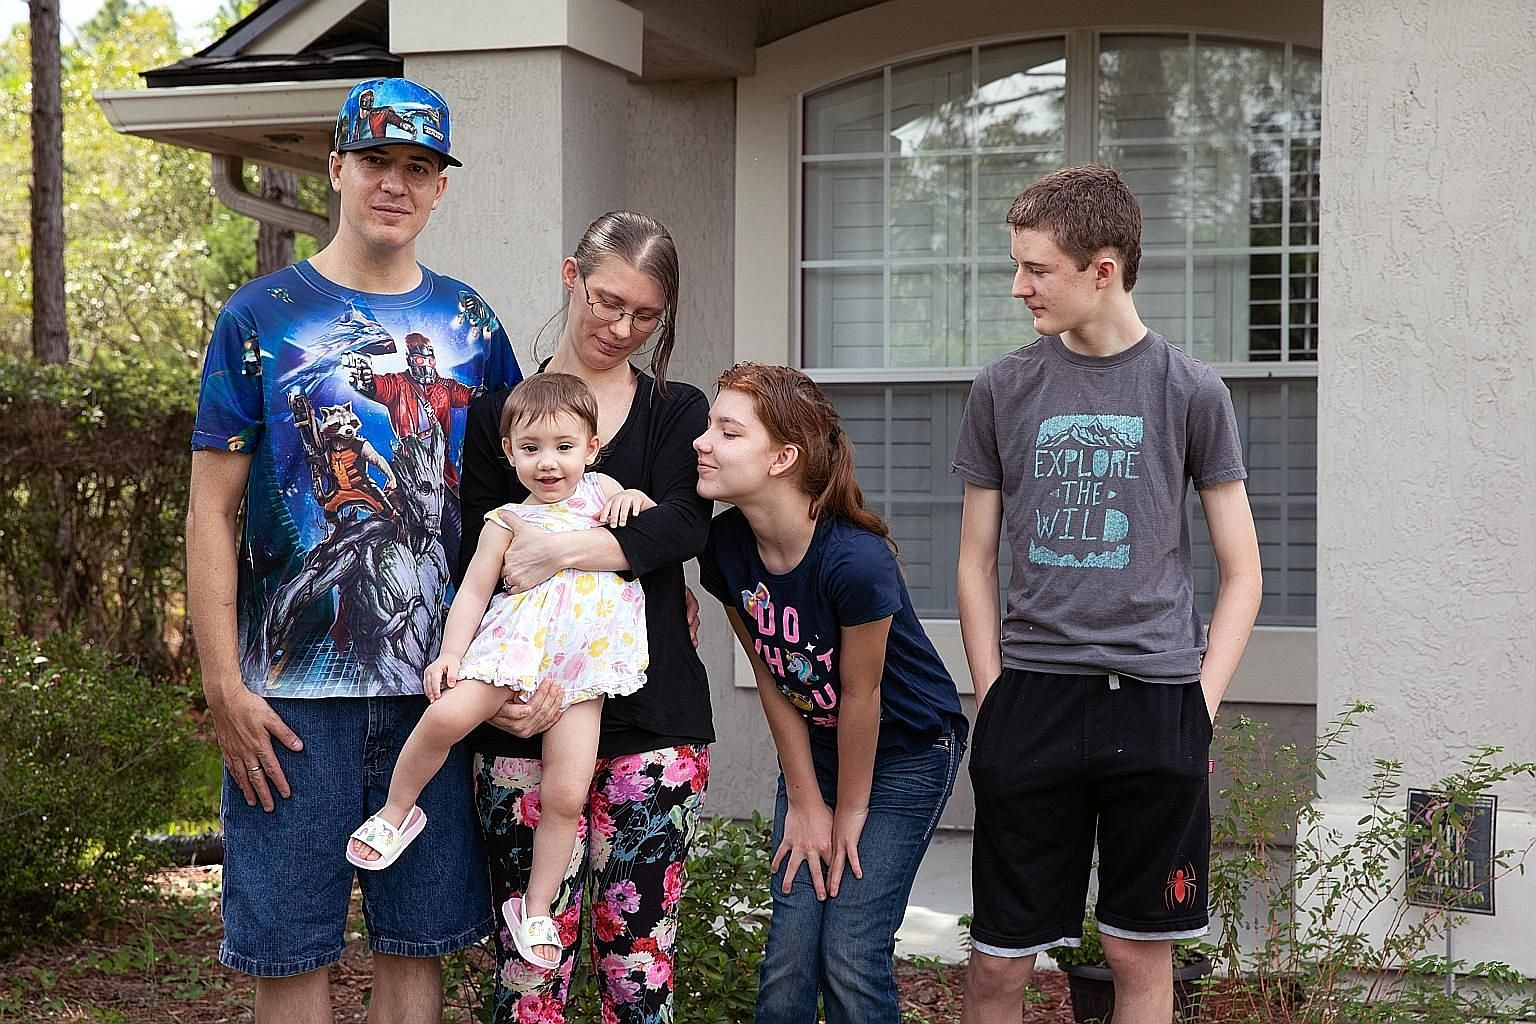 Mr Jared Strickland and his wife Karla Dennington with their children, Gracey, 17 months, Serenity, 12, and Riley, 14, at his parents' home in Florida where they live. After the pandemic hit, Mr Strickland was laid off. To keep food on the table, the